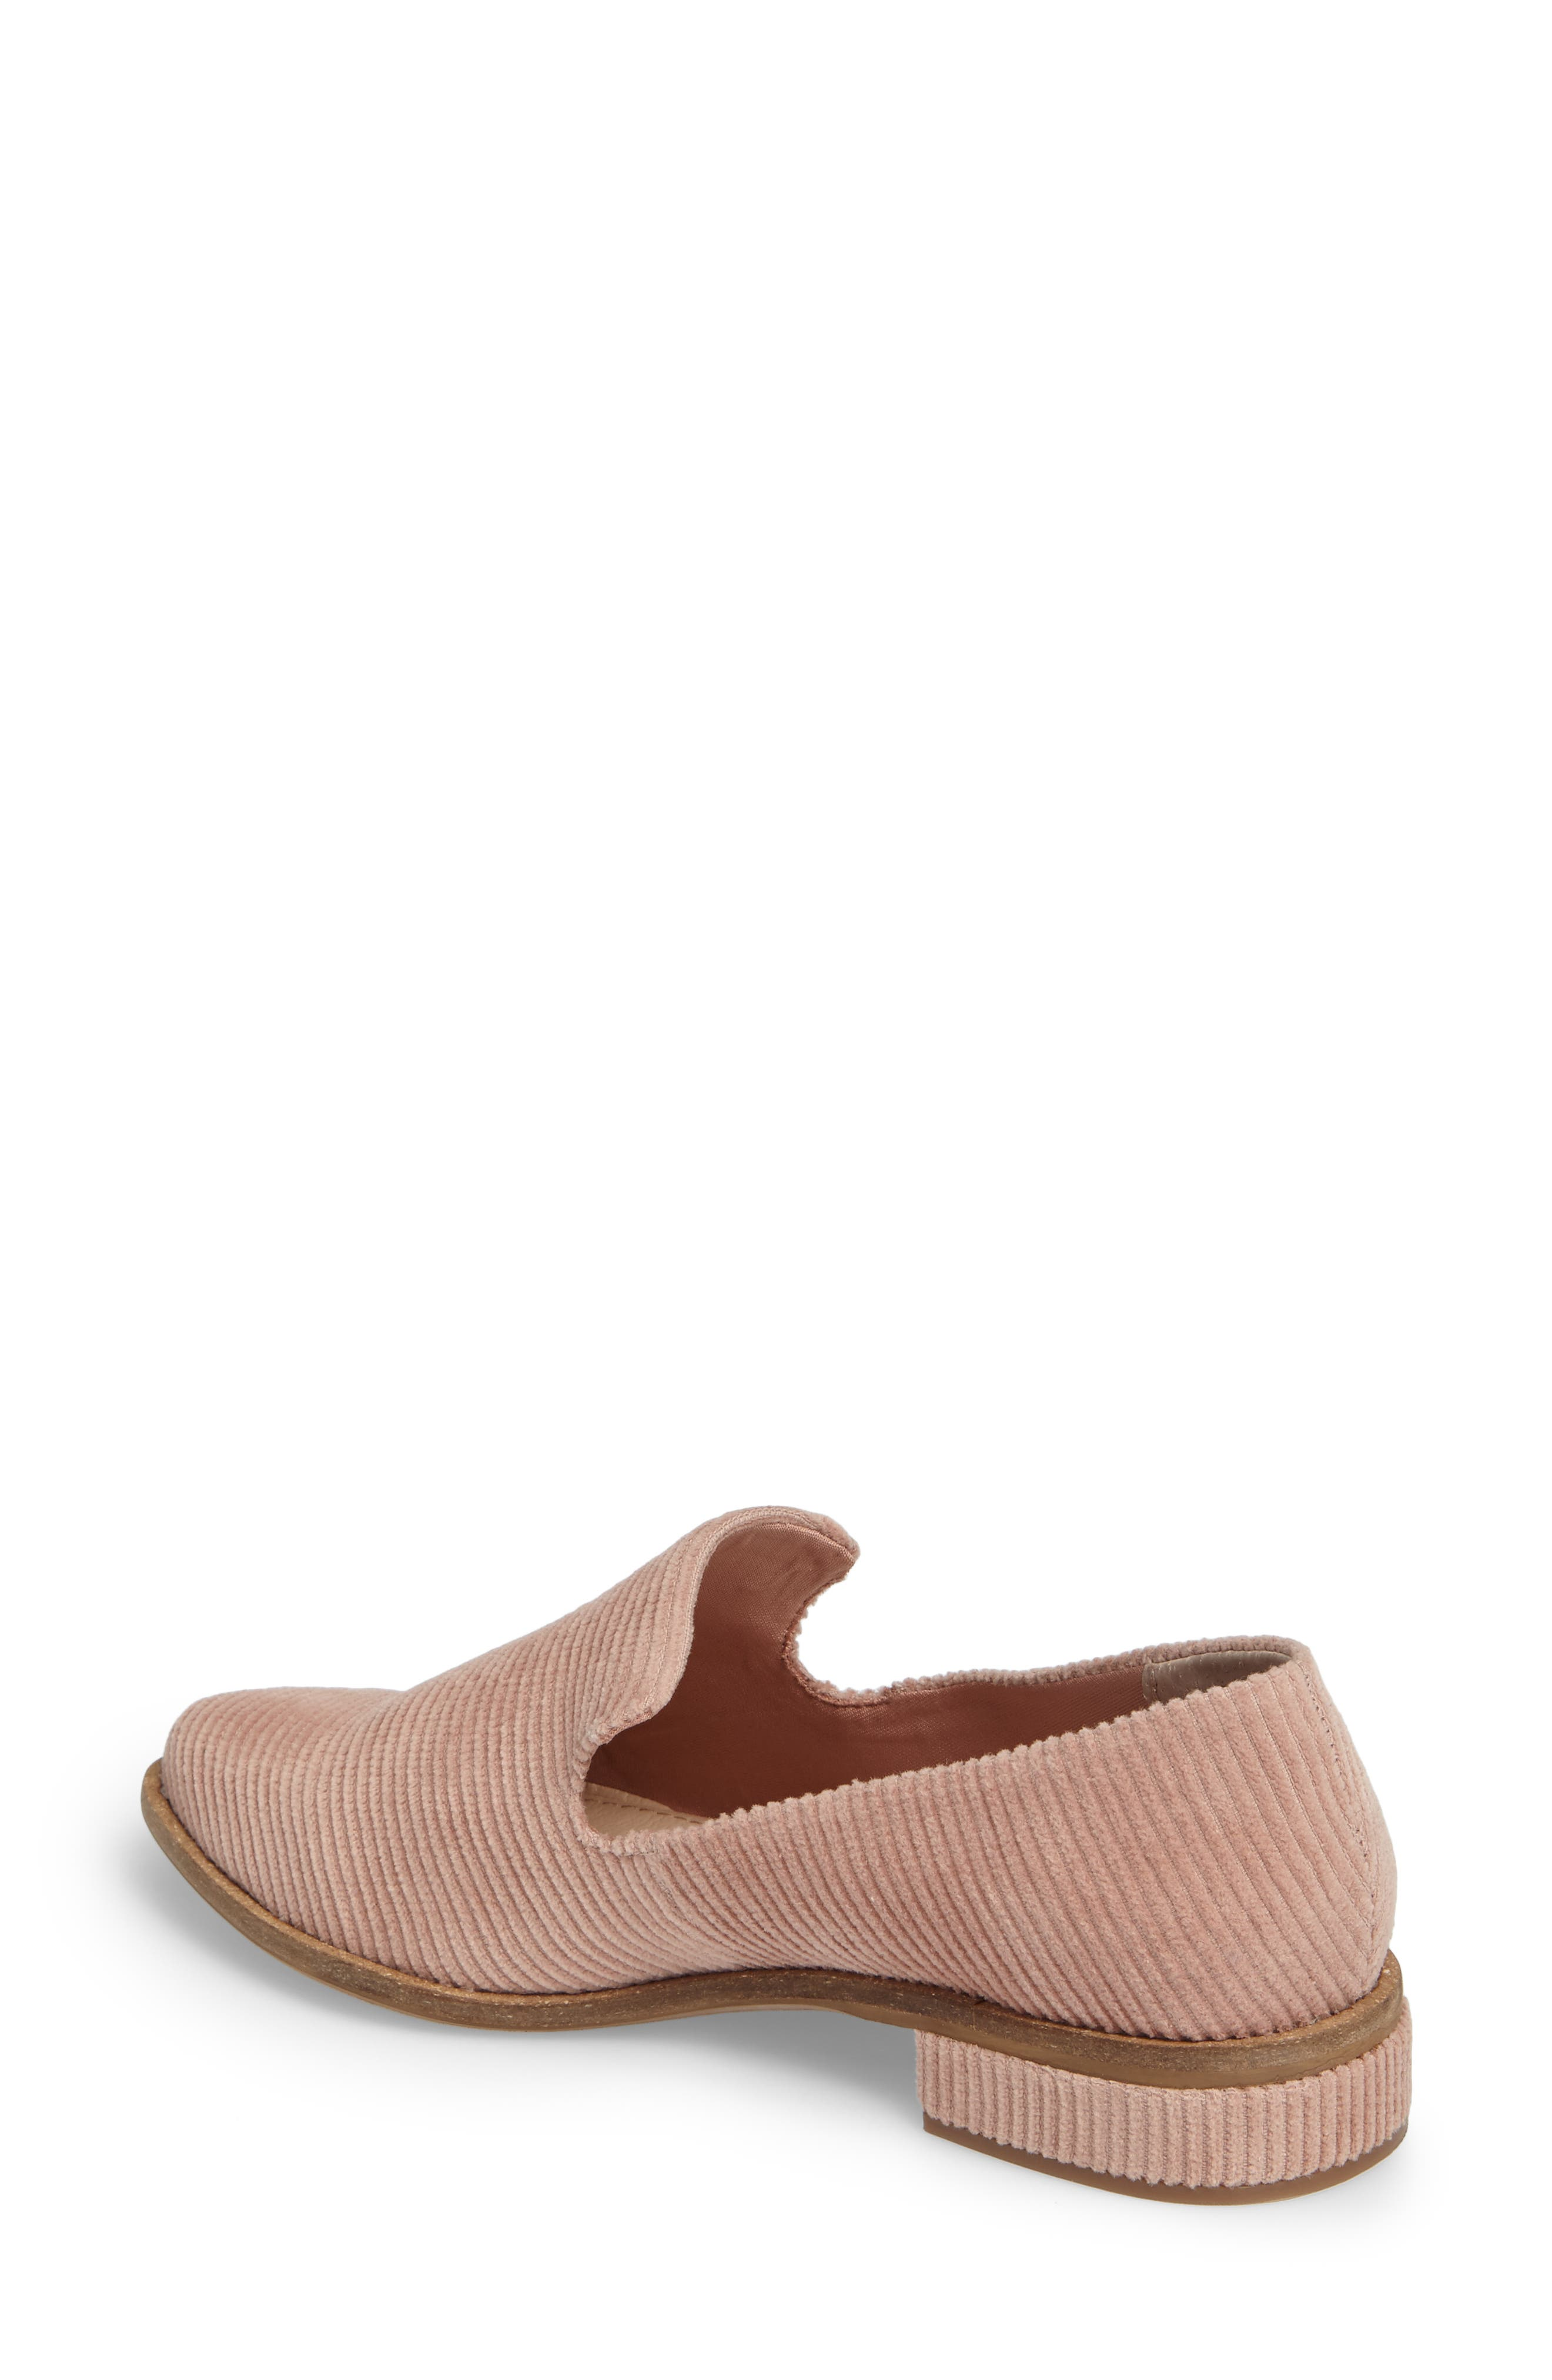 Arbor Corduroy Loafer,                             Alternate thumbnail 4, color,